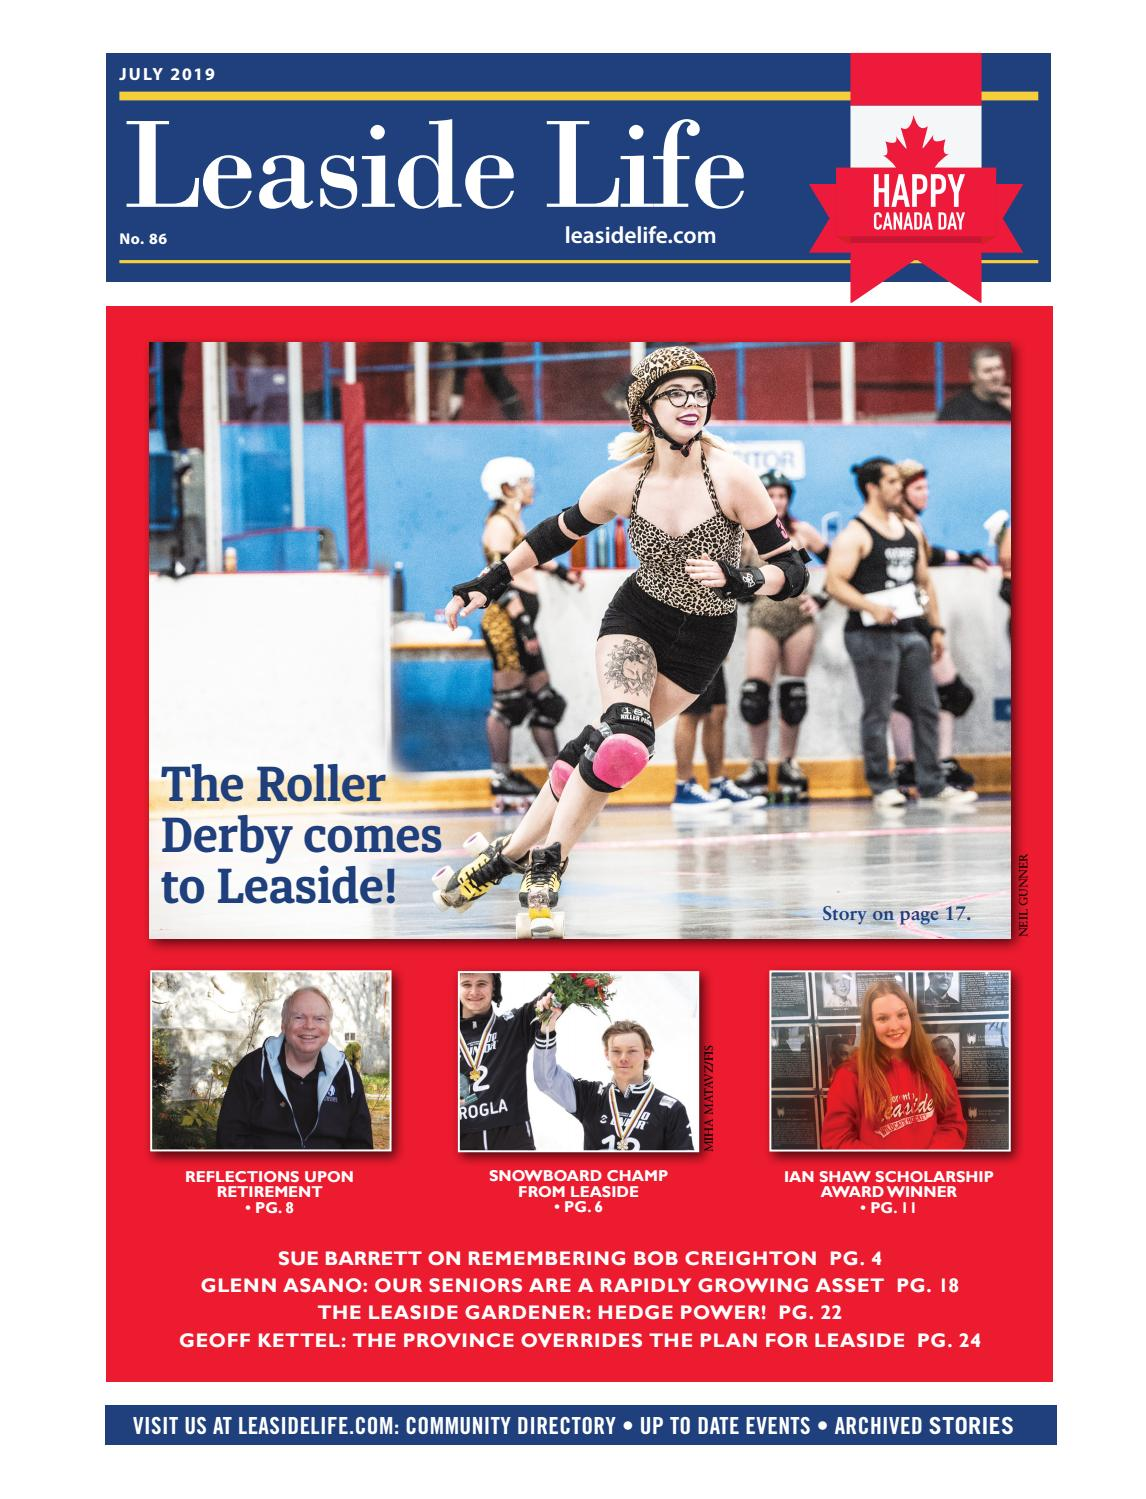 Leaside Life Issue 86 July 2019